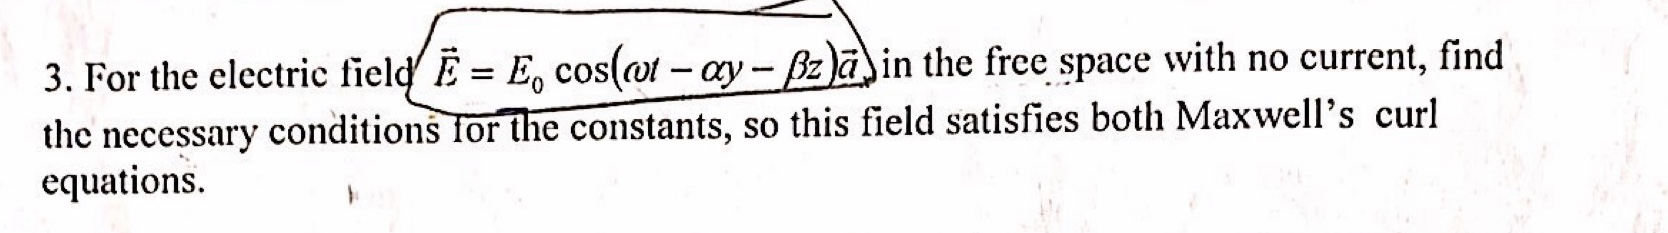 3. For the electric field' E = E, cos(ot - ay - Bzain the free space with no current, find the necessary conditions for the constants, so this field satisfies both Maxwell's curl equations